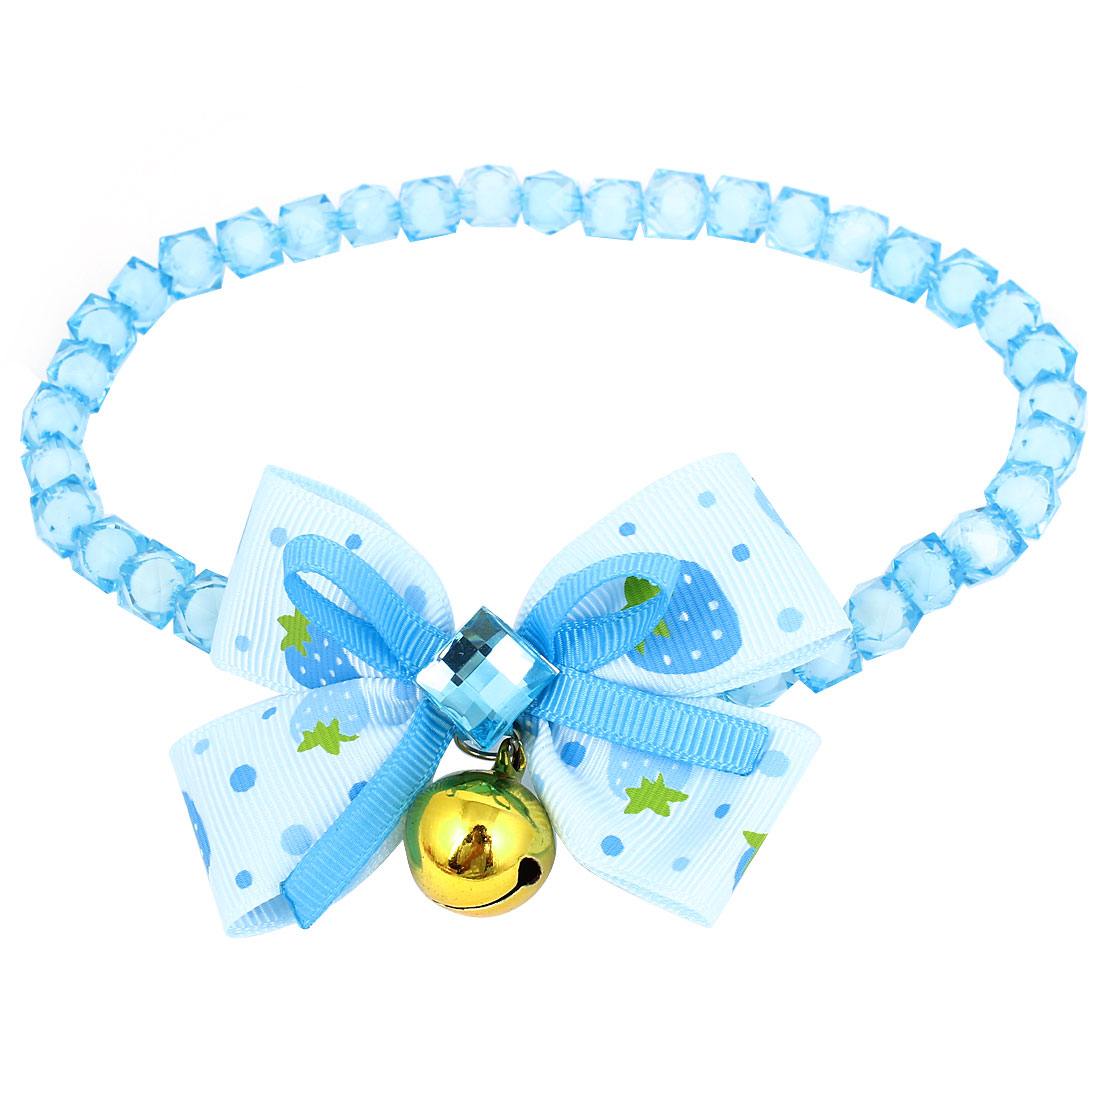 Metal Bell Pendant Bowtie Accent Pet Dog Faceted Beads Collar Necklace Blue White L